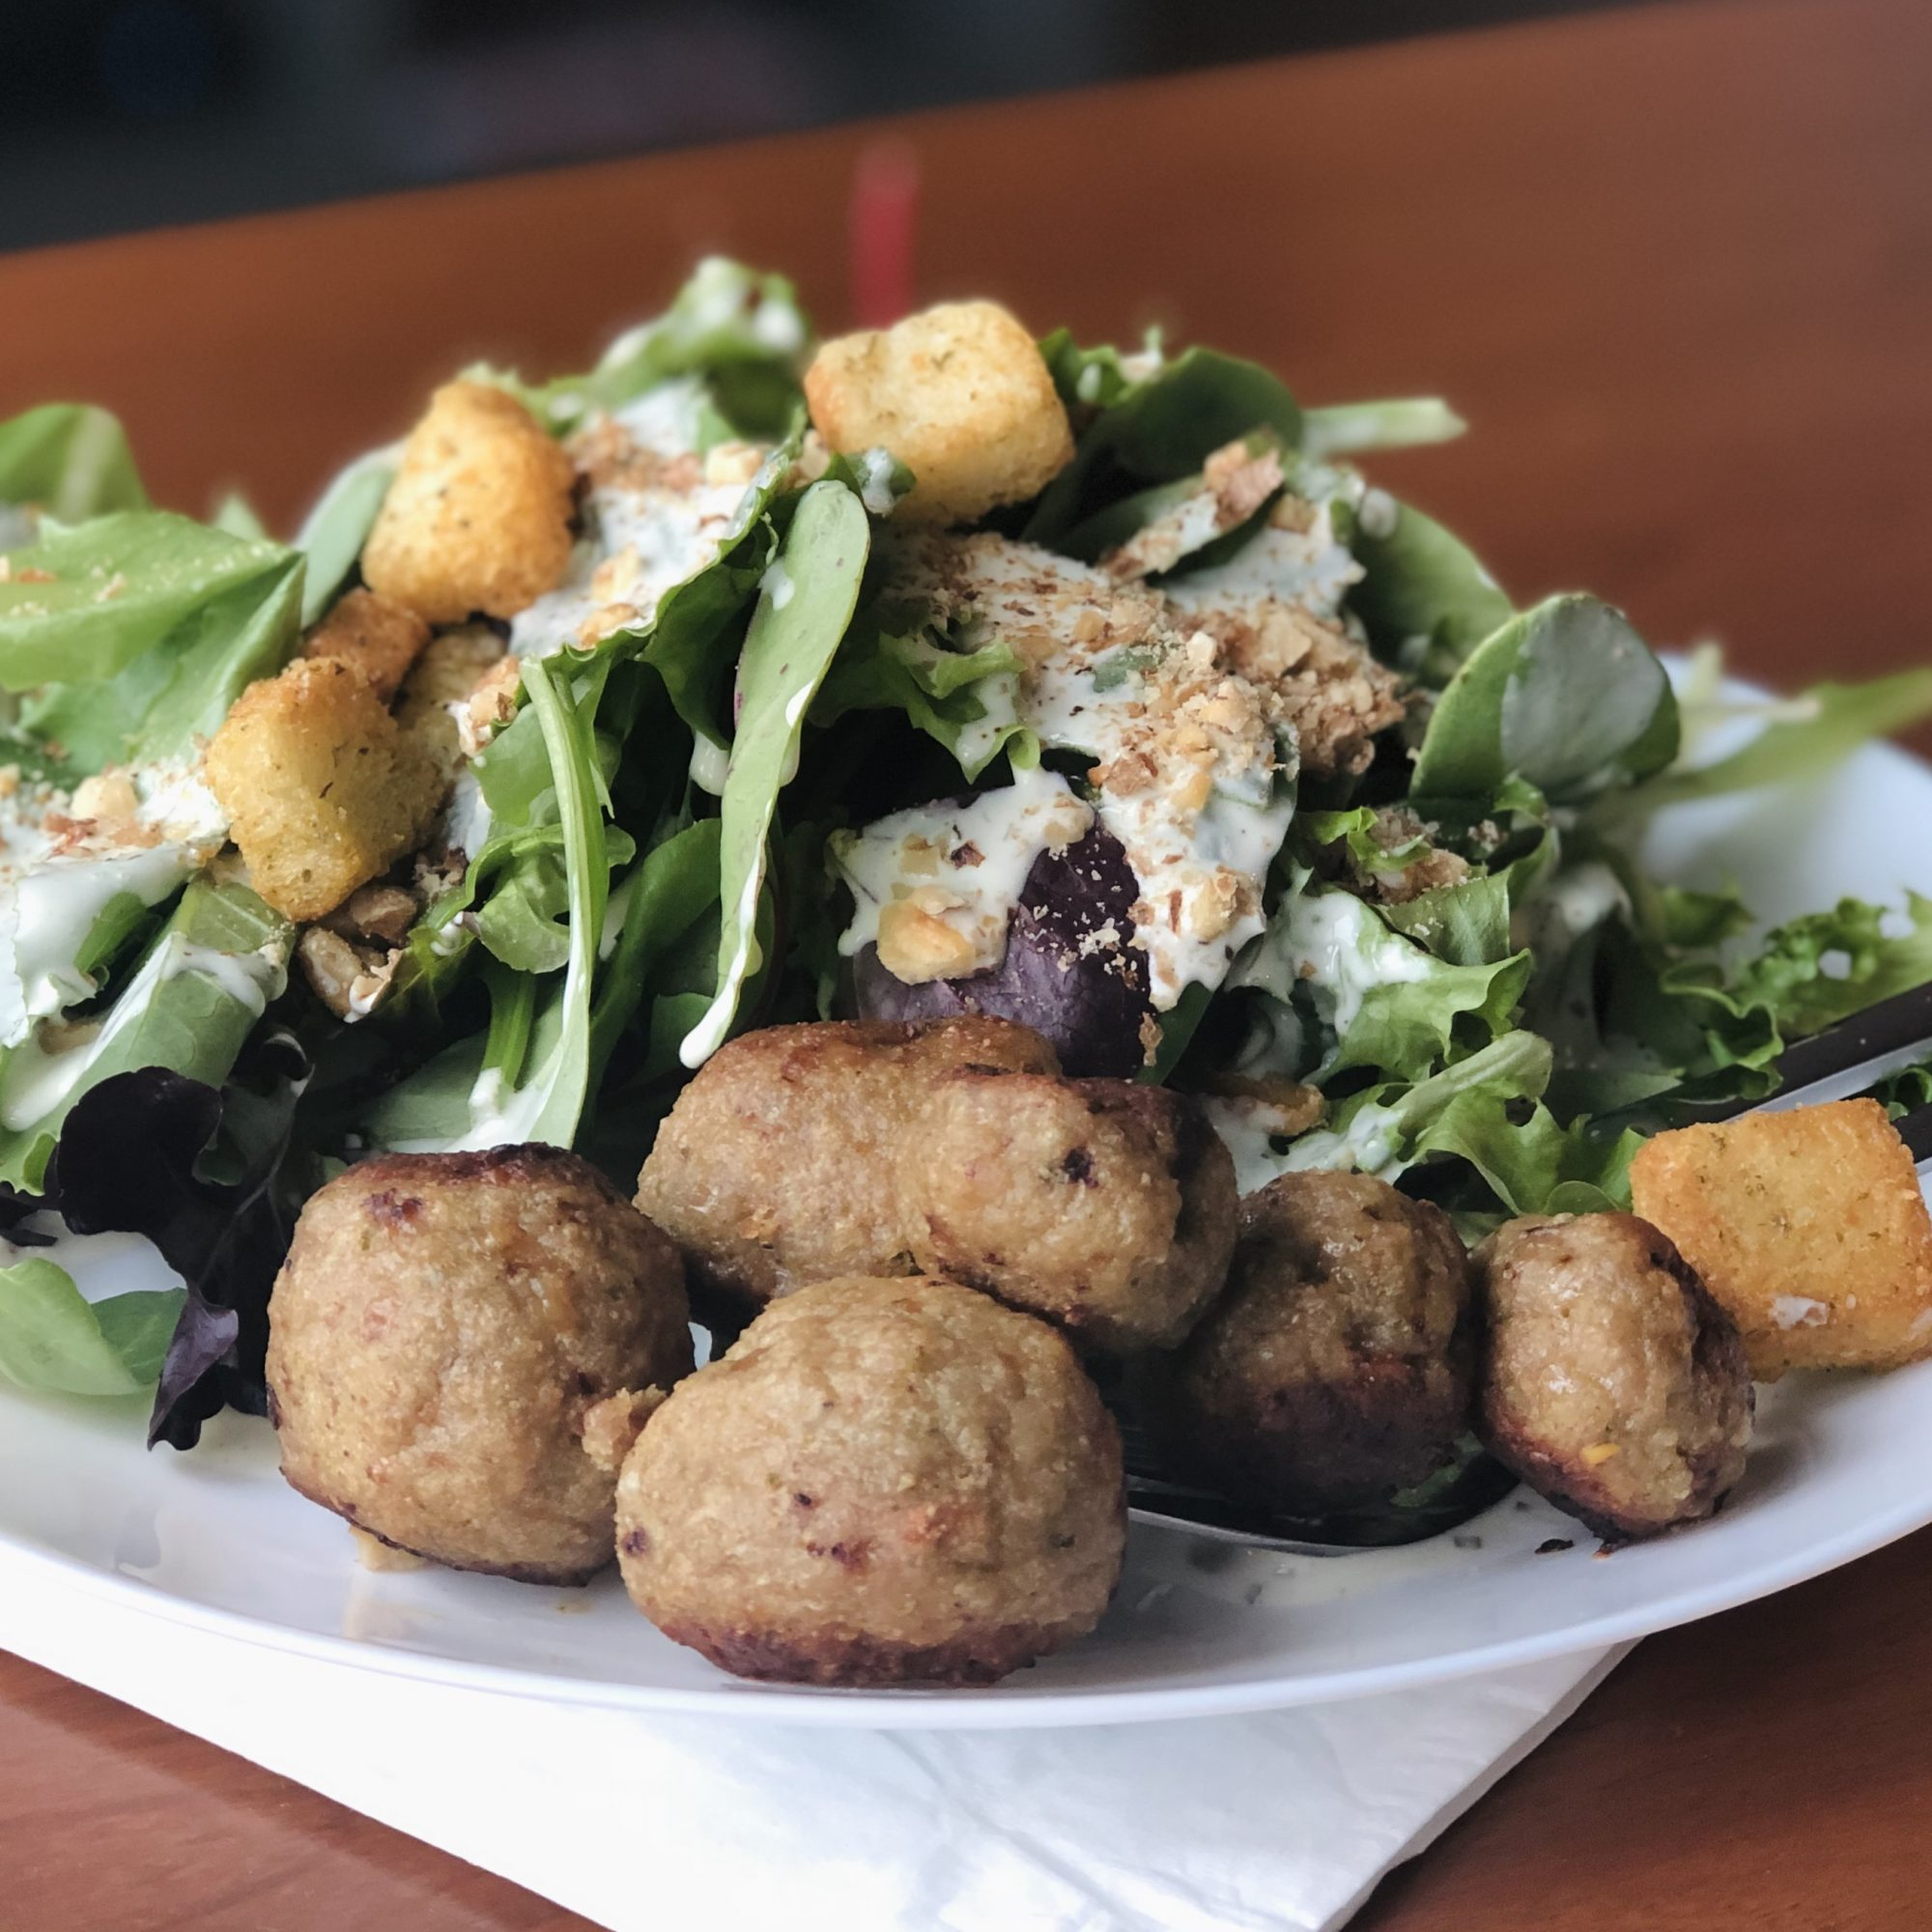 Pesto Turkey Meatballs on a plate with salad